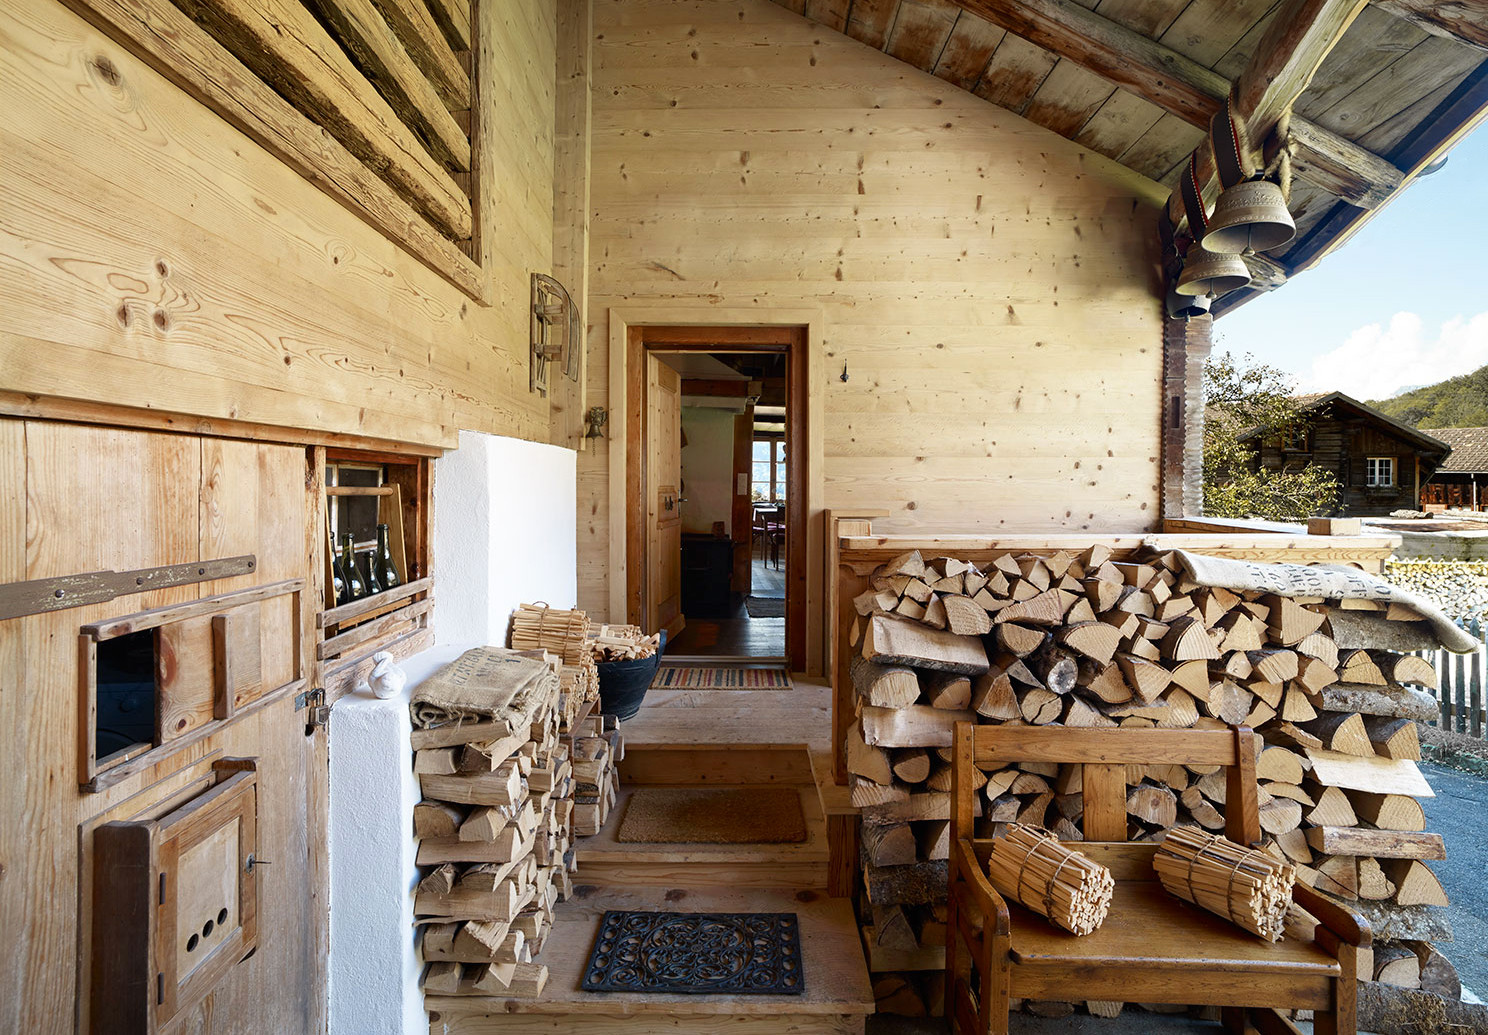 Stacks and bundles of wood, as well as traditional cowbells, welcome visitors to Patrick Schaffter and Werner Jahnel's chalet in Switzerland's Bernese Oberland.